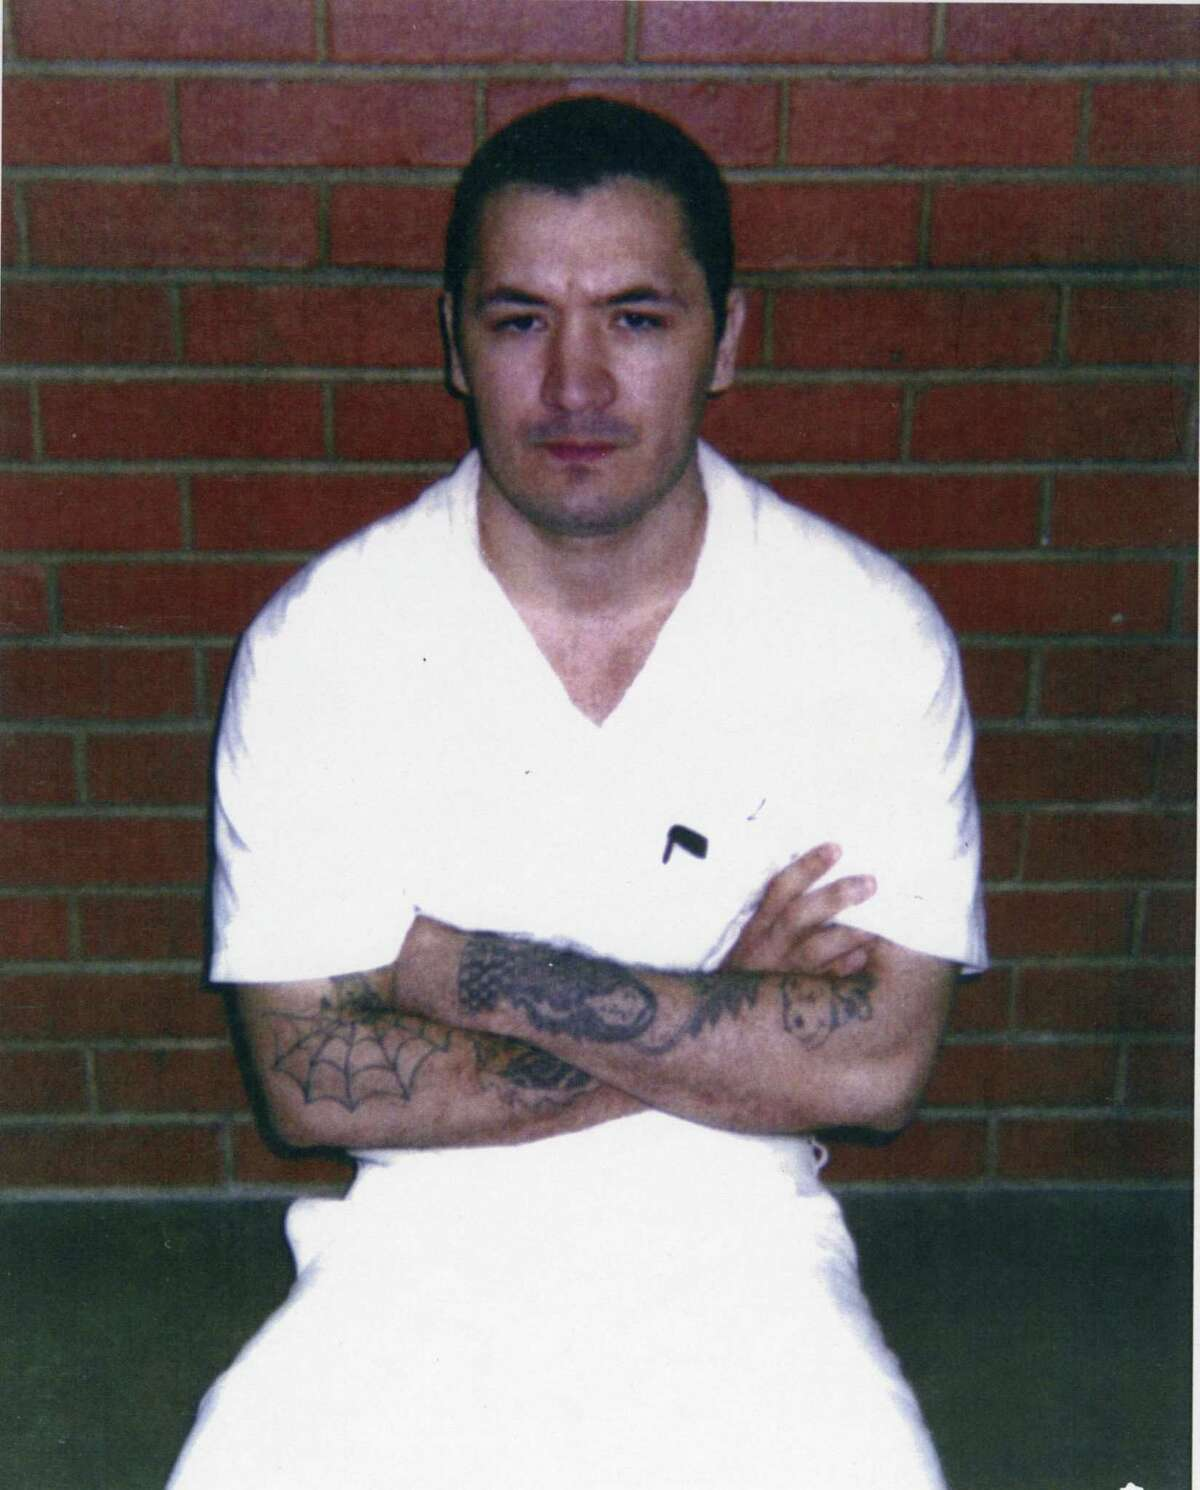 Ruben Cantu was 17 when he was accused of shooting a victim nine times with a rifle before emptying at least nine more rounds into the only eyewitness, a man who barely survived to testify. Executed in 1993, he was likely innocent.